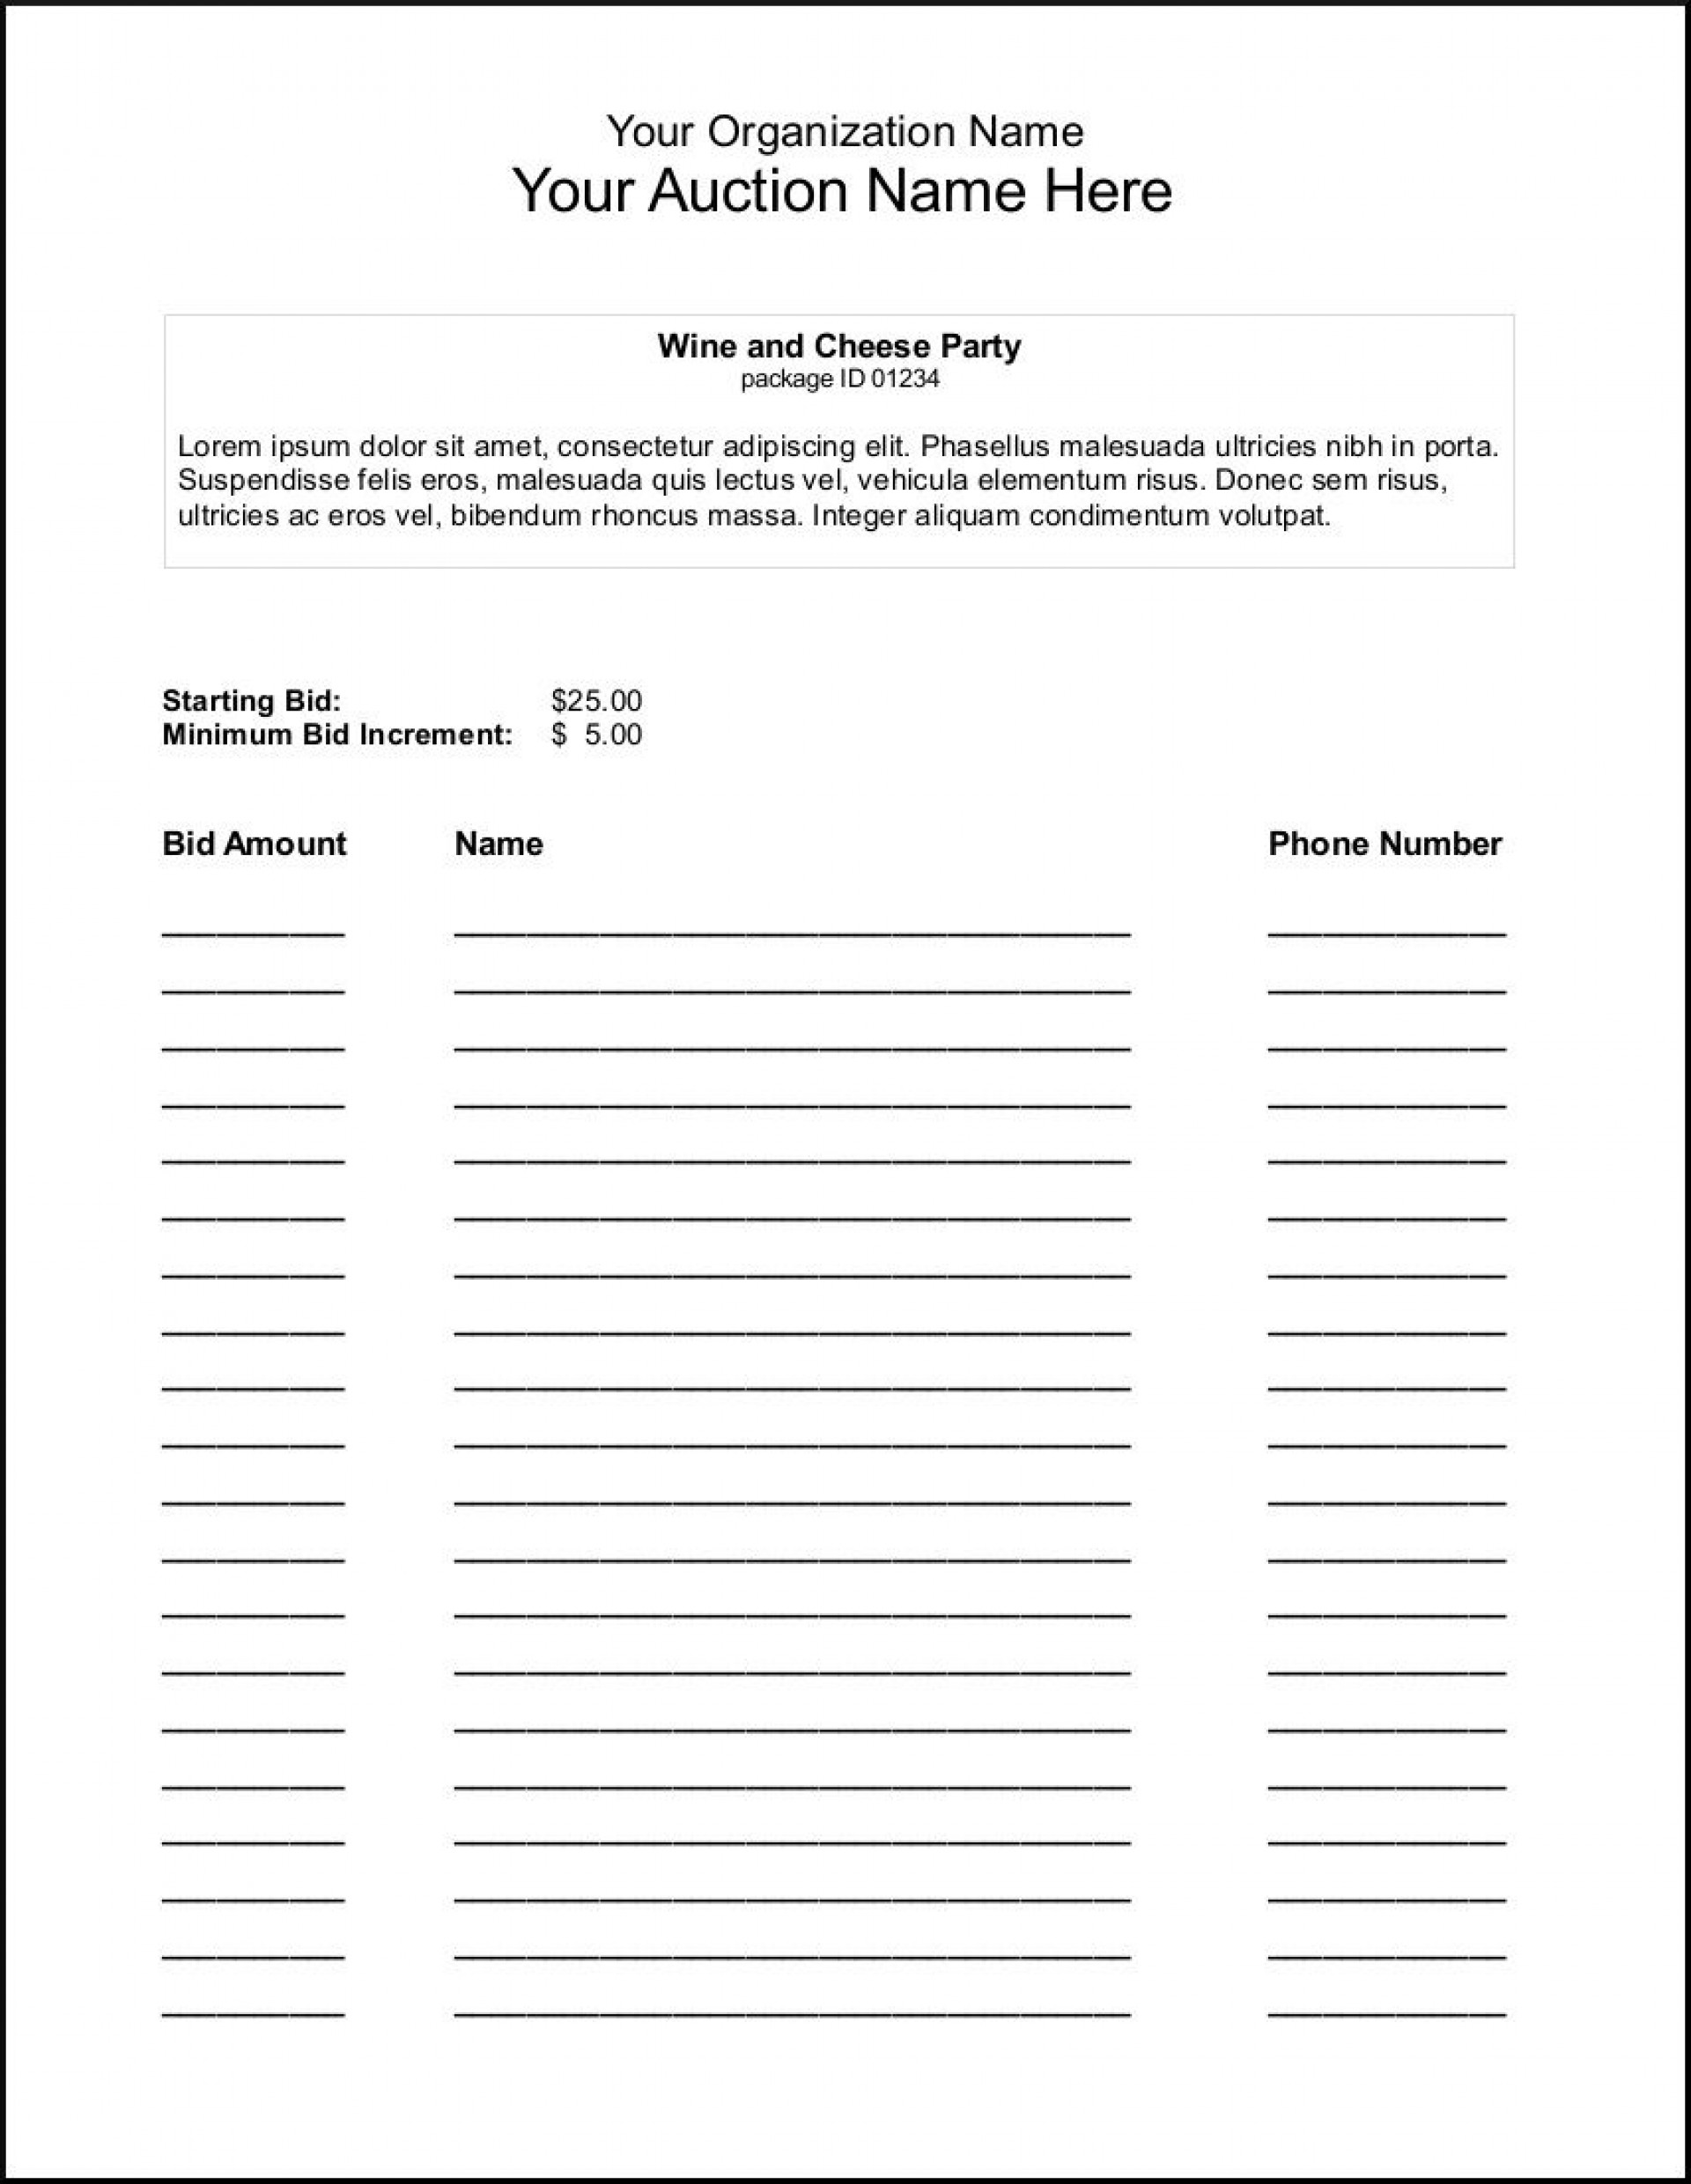 000 Sensational Silent Auction Bid Sheet Template Example  Free Download Sample Microsoft Word1920